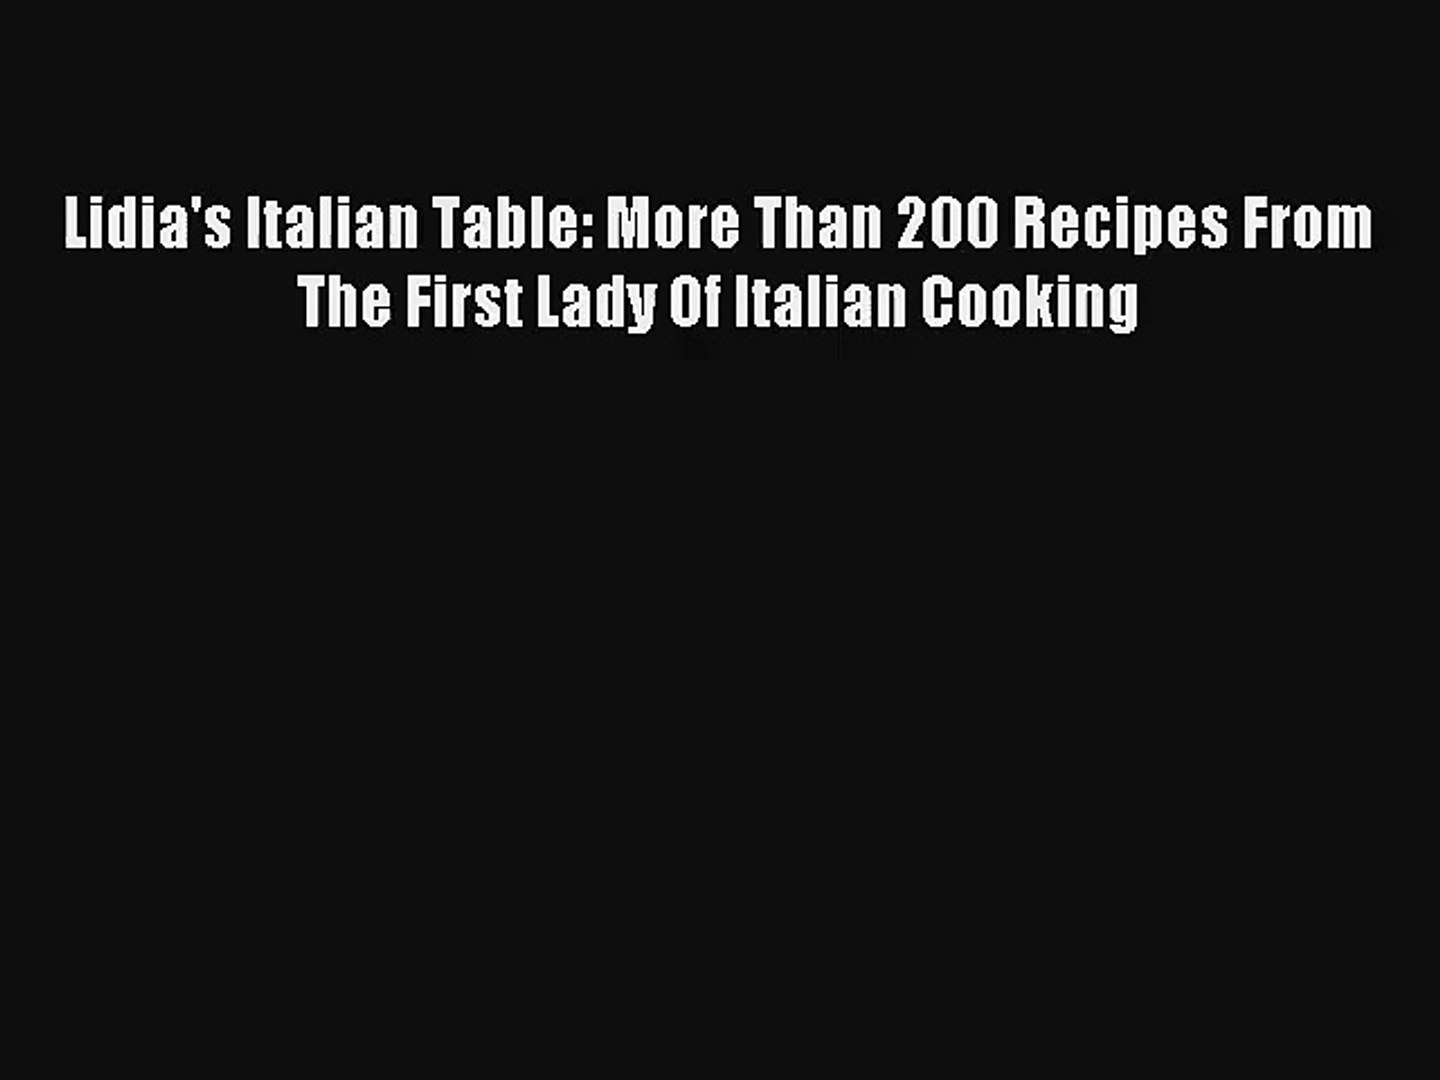 Tortellini at Midnight And Other Heirloom Family Recipes from Taranto to Turin to Tuscany